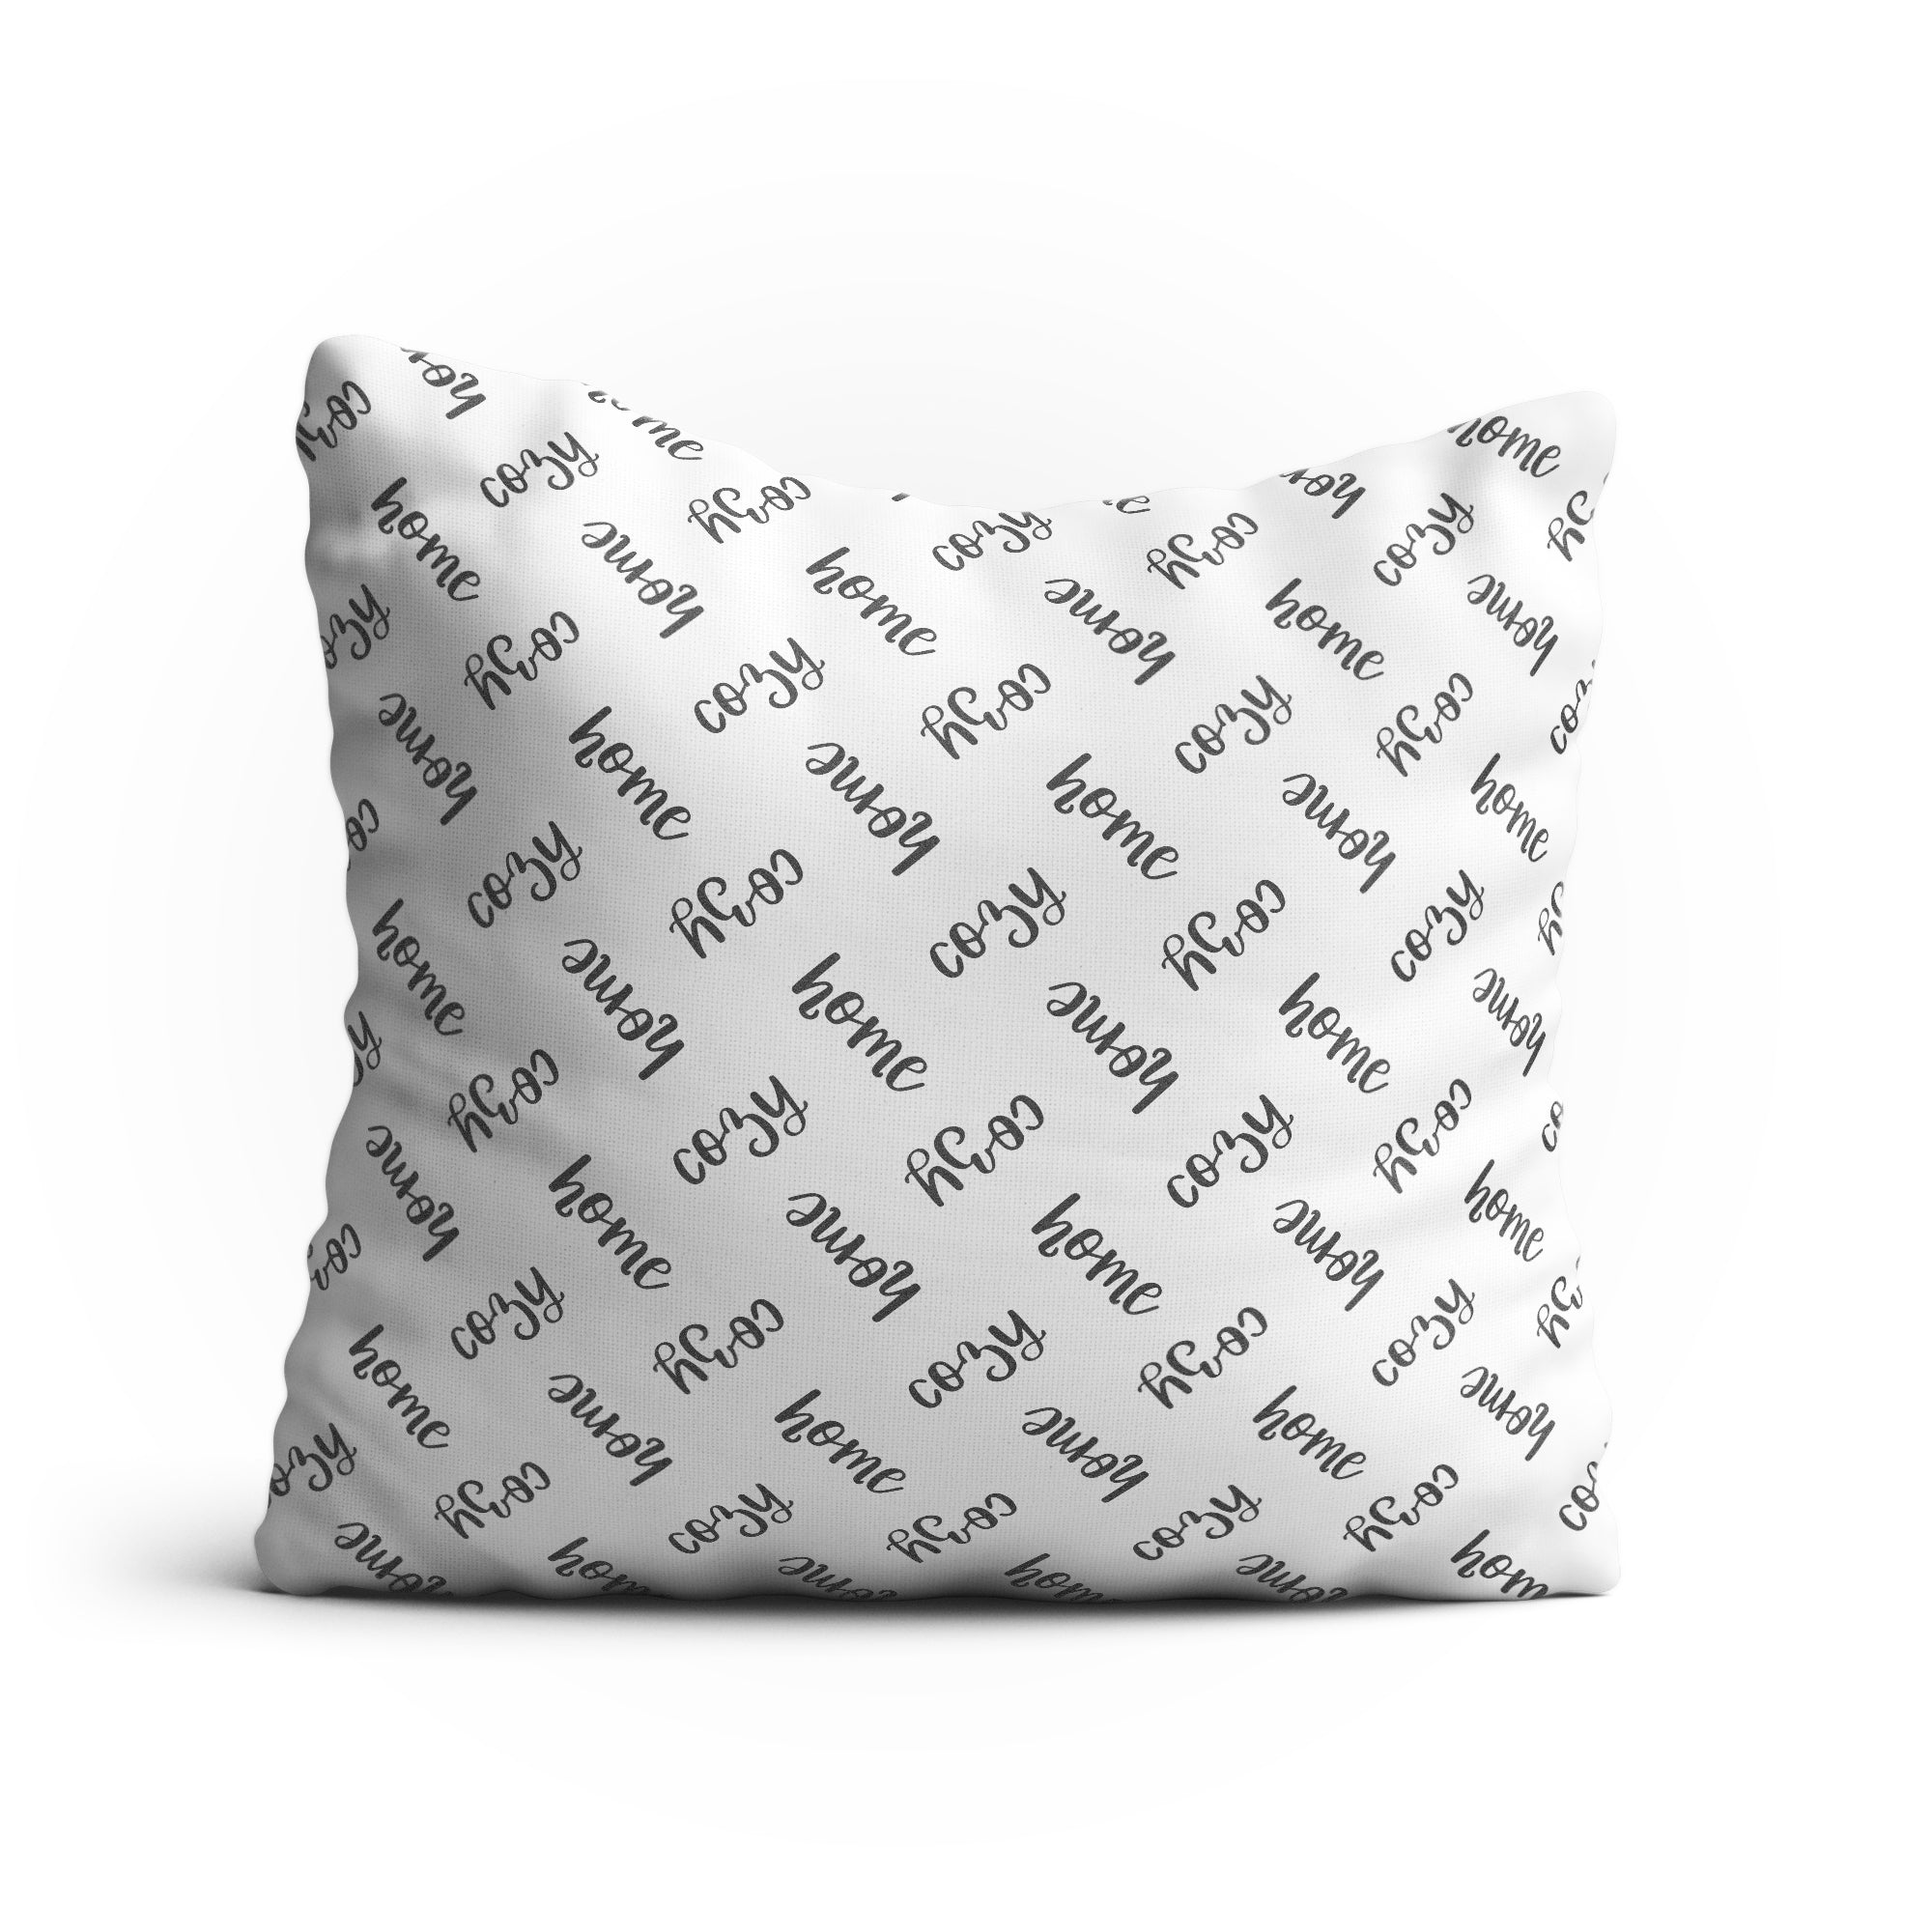 "Throw Pillow -""Cozy Home"" Text Pattern Double-Sided 18x18 Square Pillow Cover with Insert for Couch, Sofa or Bed (White)"